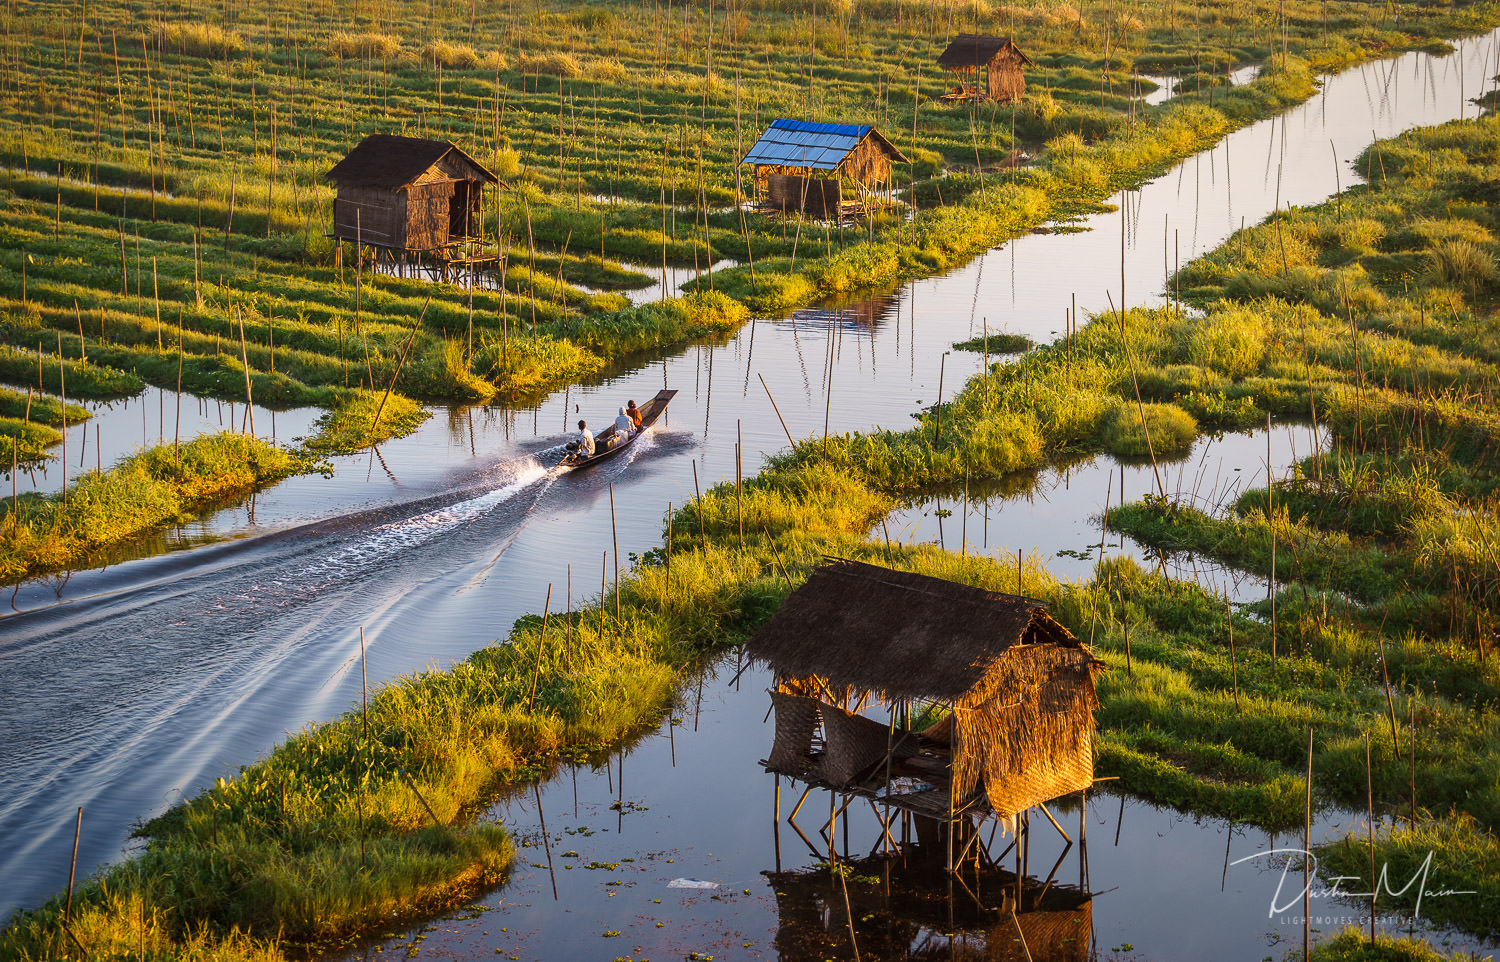 A boat heads from the village and past the floating gardens to the lake. The buildings you see here are rest houses for the farmers during the heat of the day.  © Dustin Main 2017